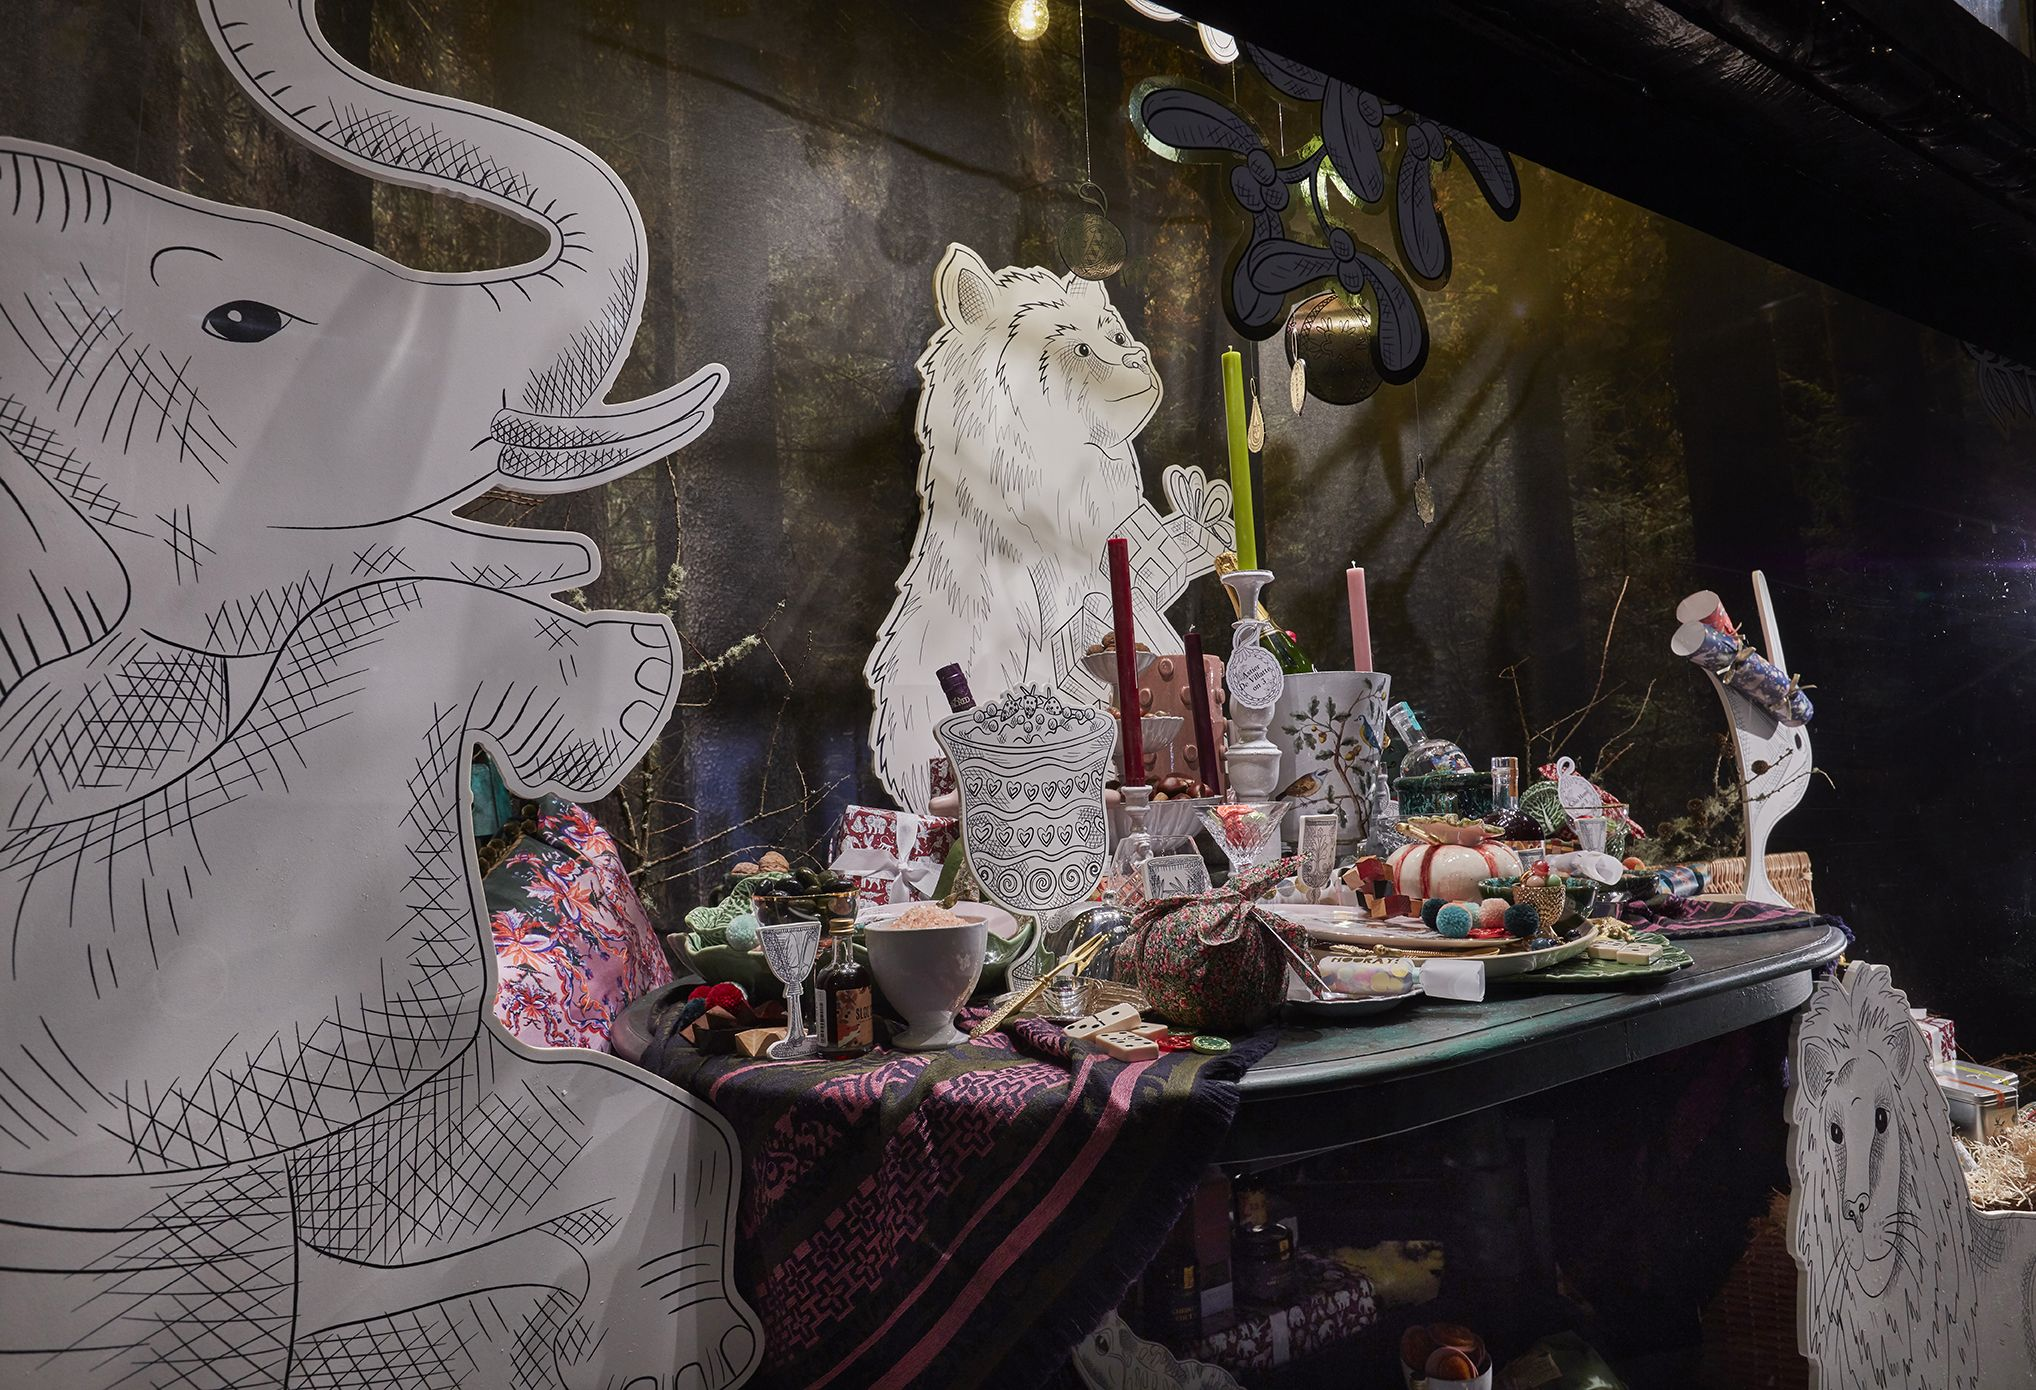 Christmas windows 2018 - The best displays from around the world